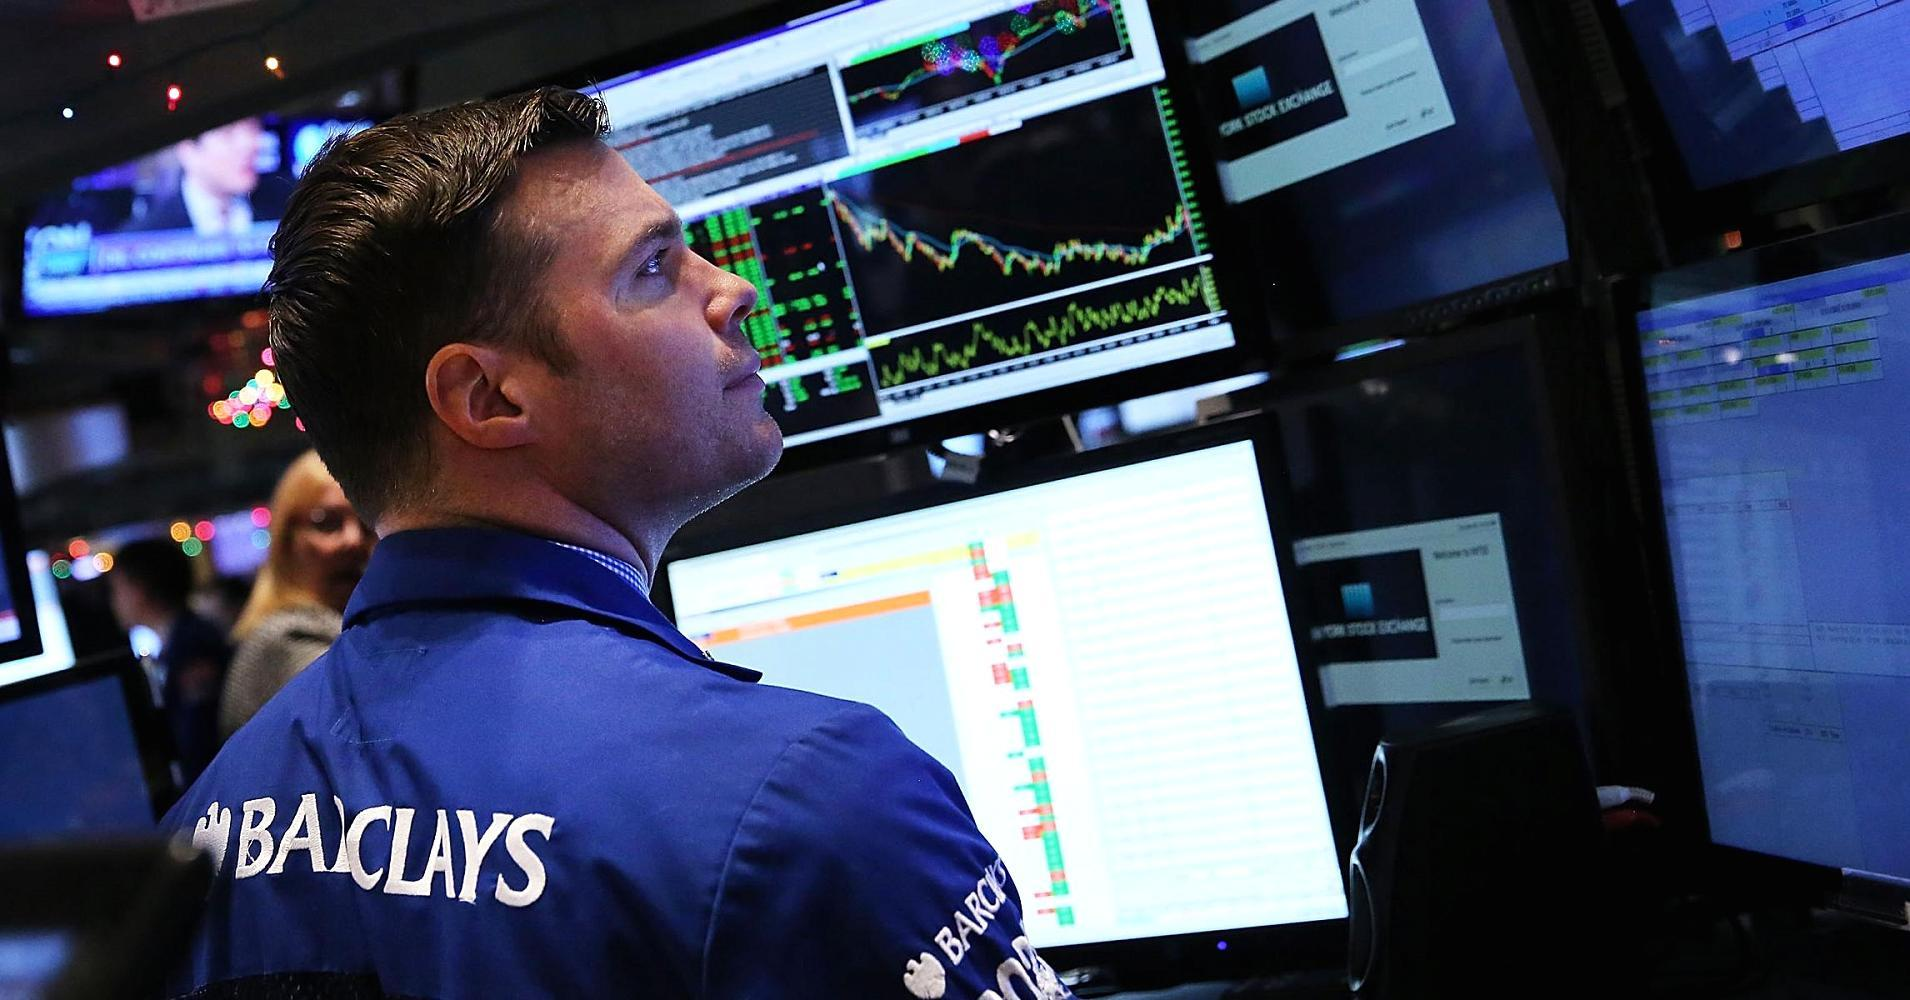 Early movers: MDT, PVH, DG, SHLD, AAPL & more